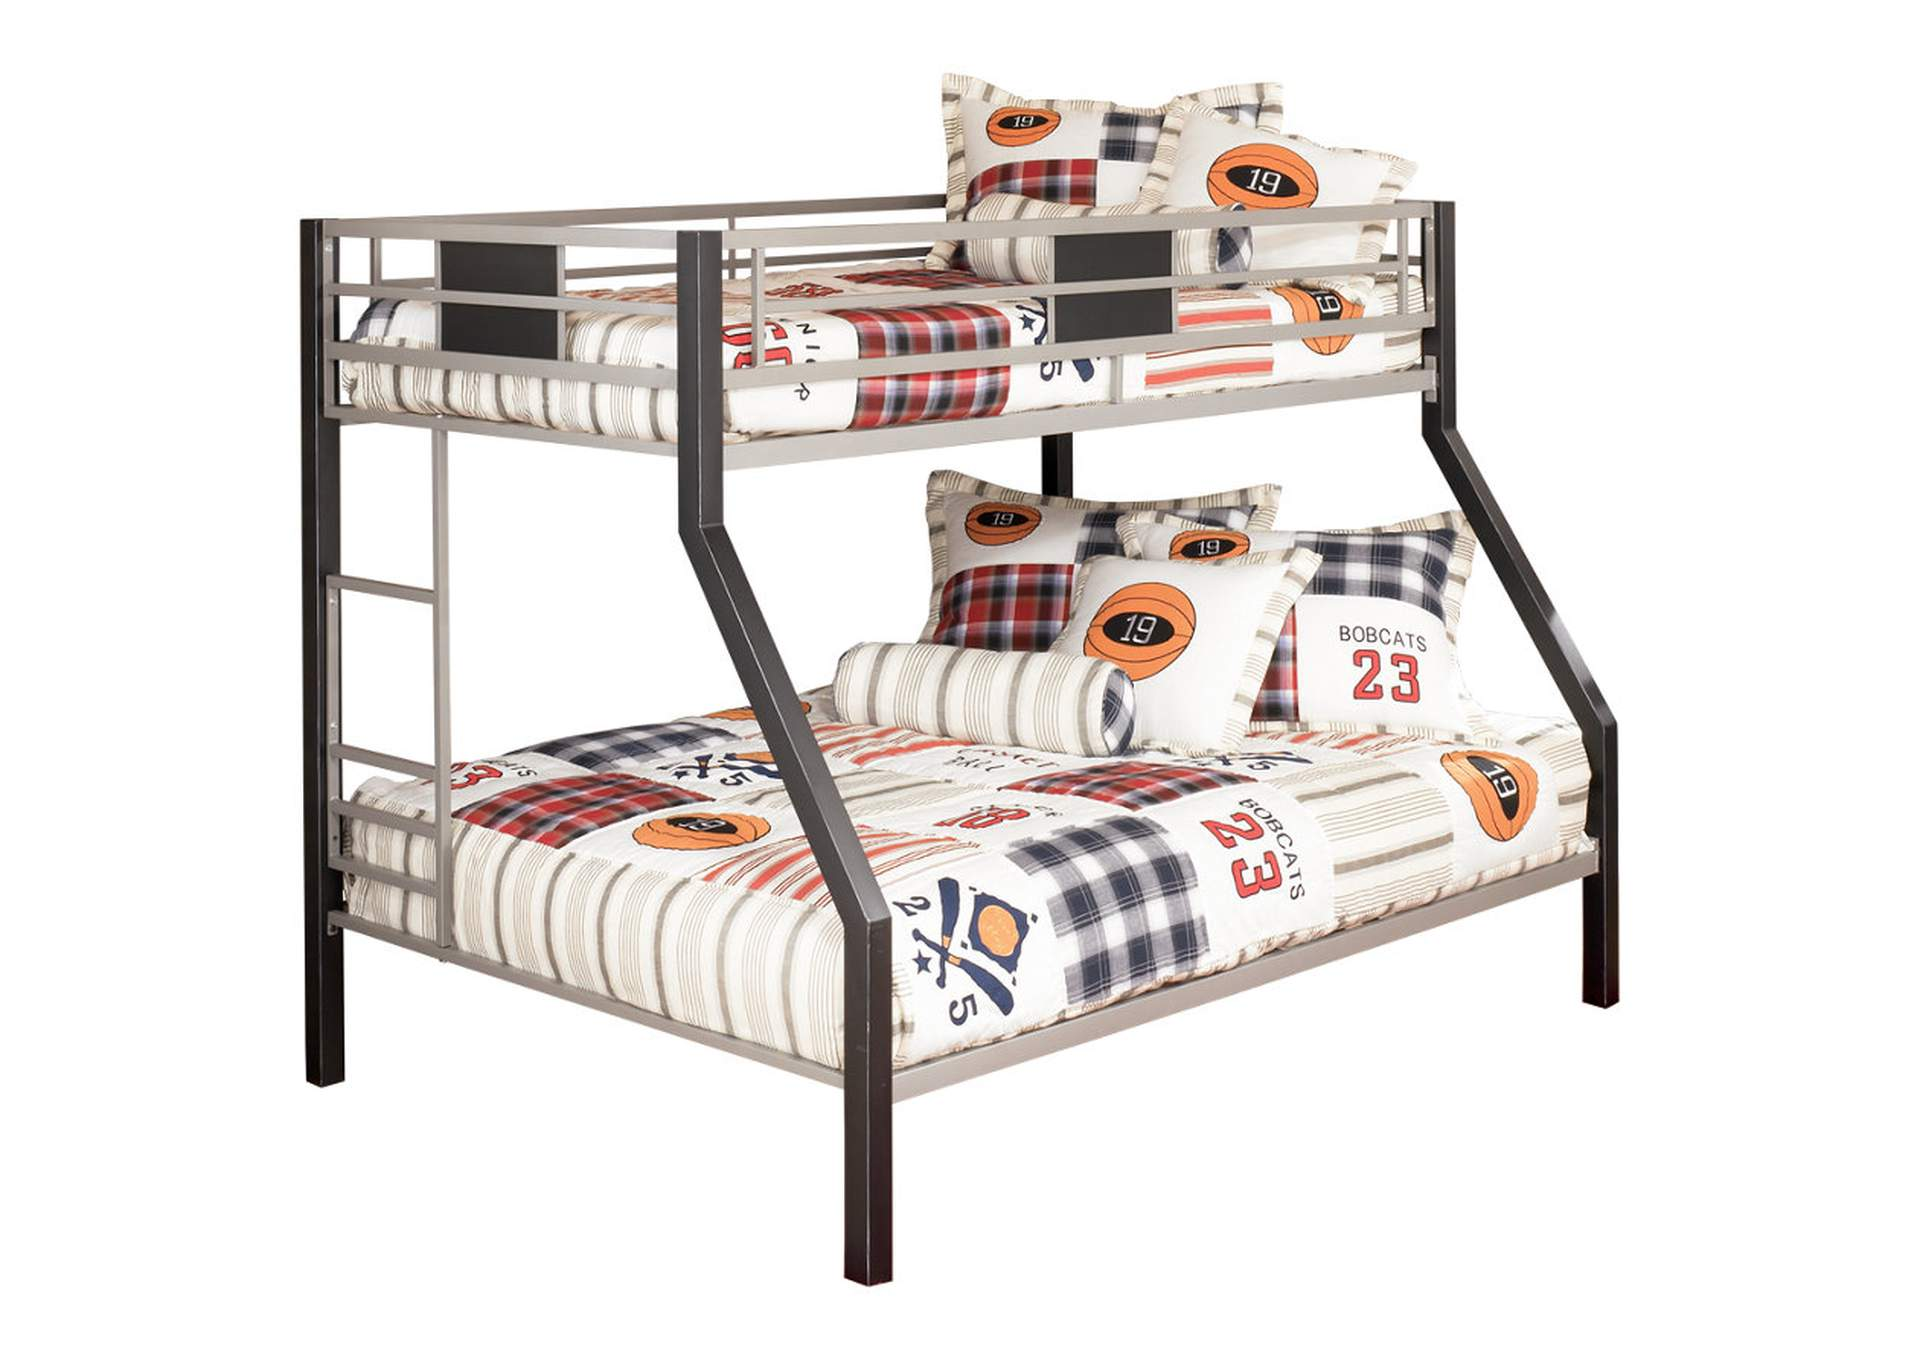 Dinsmore Twin Over Full Bunk Bed Ashley Furniture Homestore Independently Owned And Operated By Appliance World Ltd